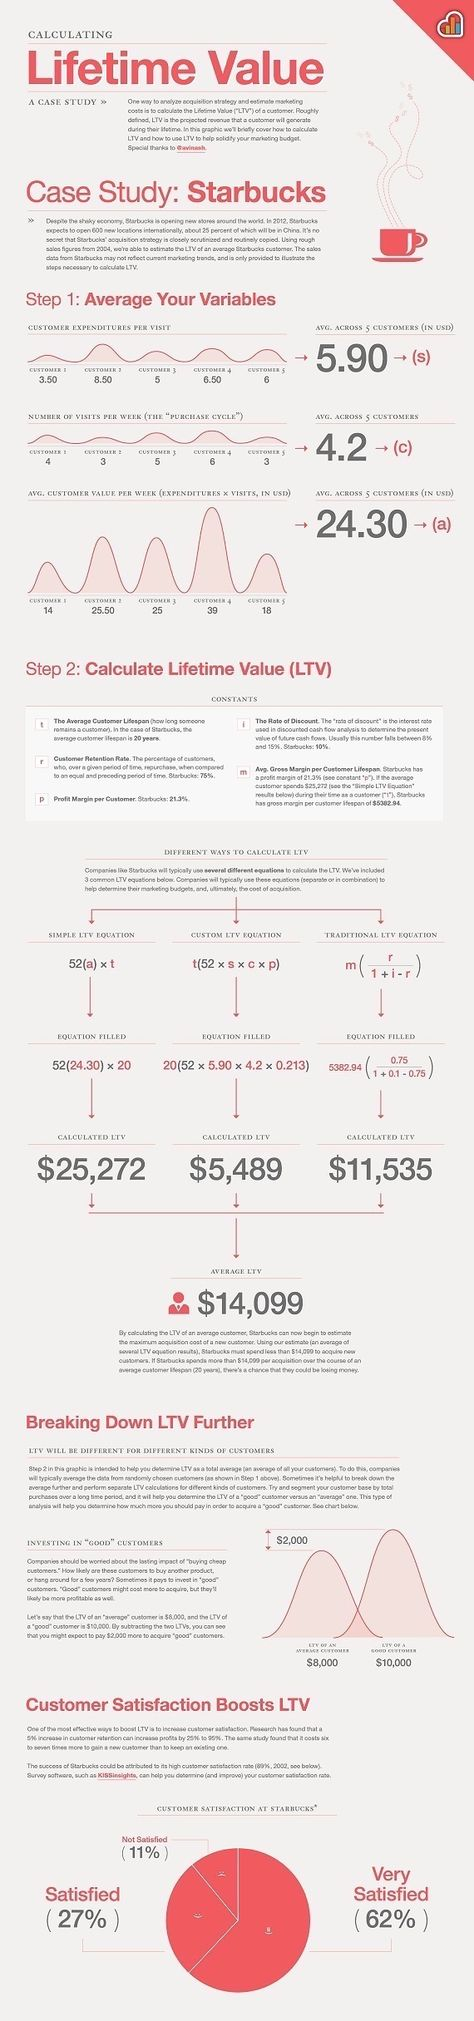 How To Calculate Lifetime Value - The Infographic